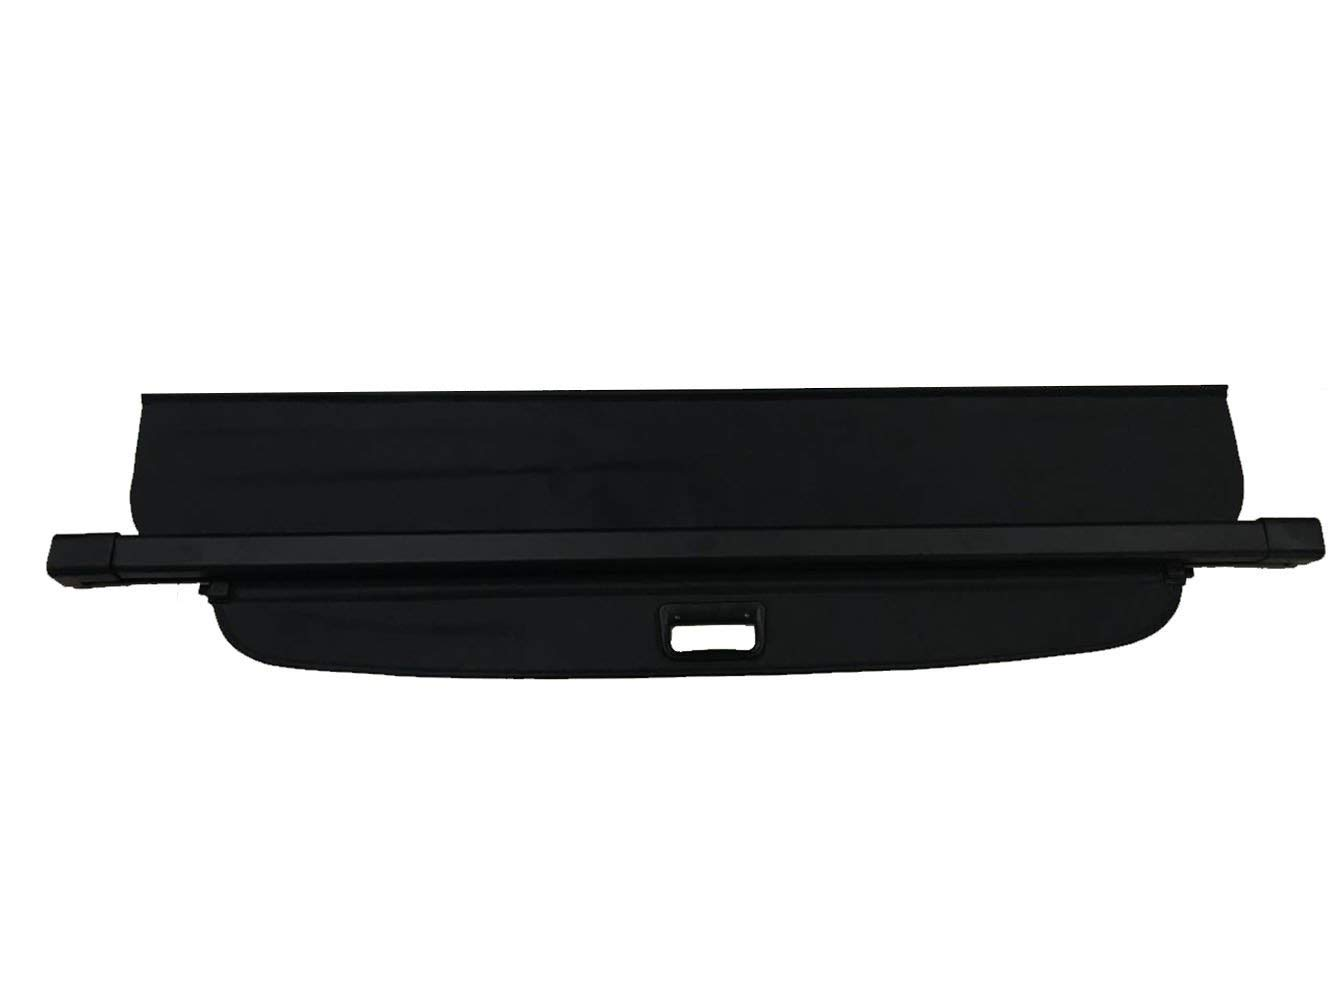 Cargo Cover Compatible for 13-18 Ford Escape Cargo Cover Trunk Shielding Shade Black by Kaungka (Updated Version:There is no Gap Between The Back Seats and The Trunk Cover) Guangzhou Kai-long Auto Accessories Ltd.